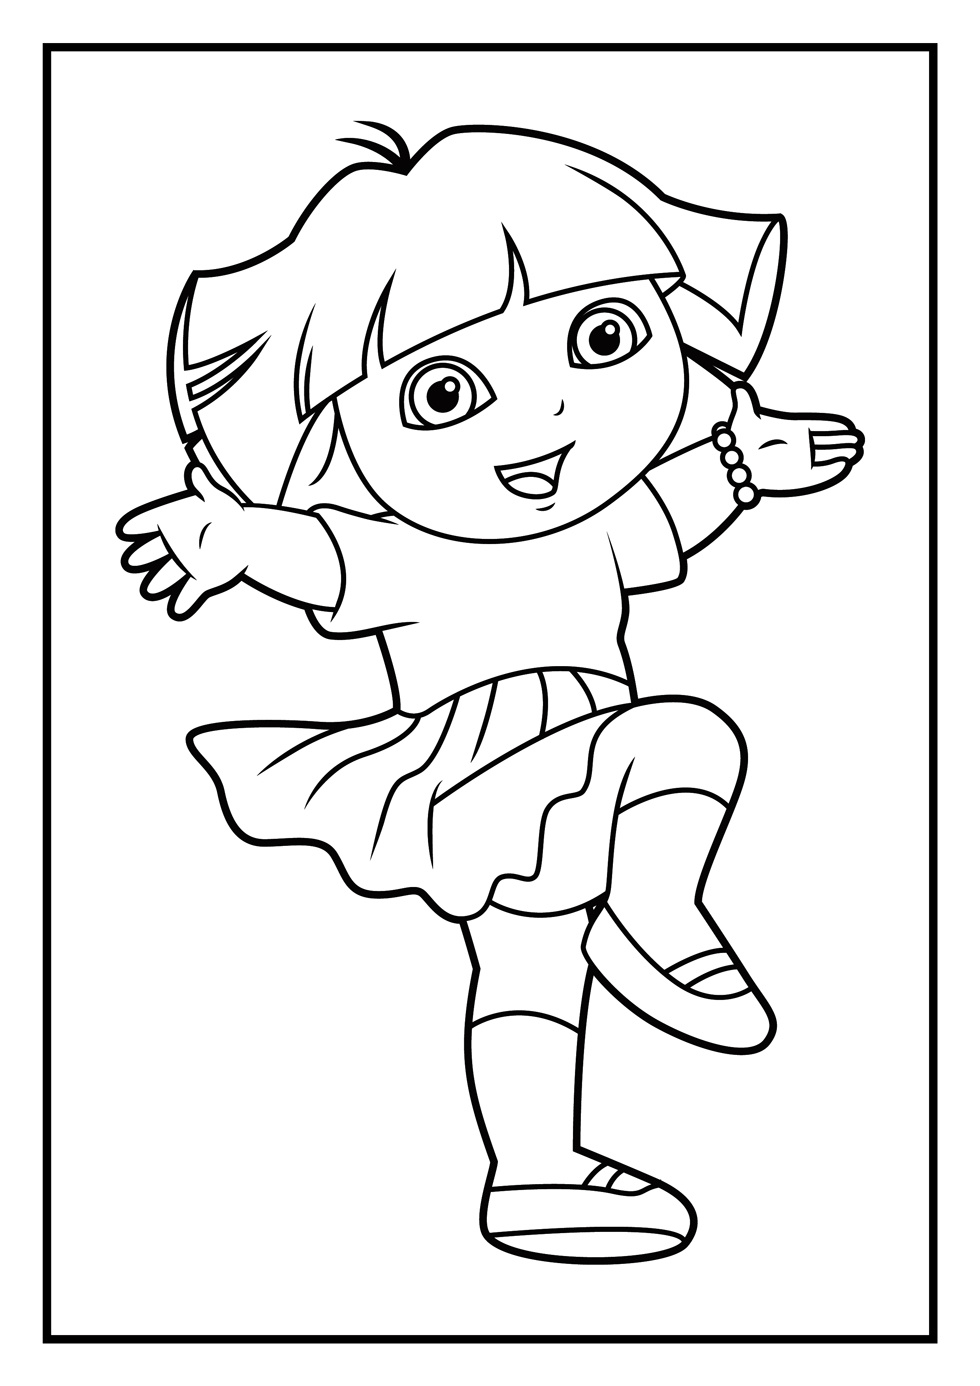 dora coloring page print download dora coloring pages to learn new things coloring dora page